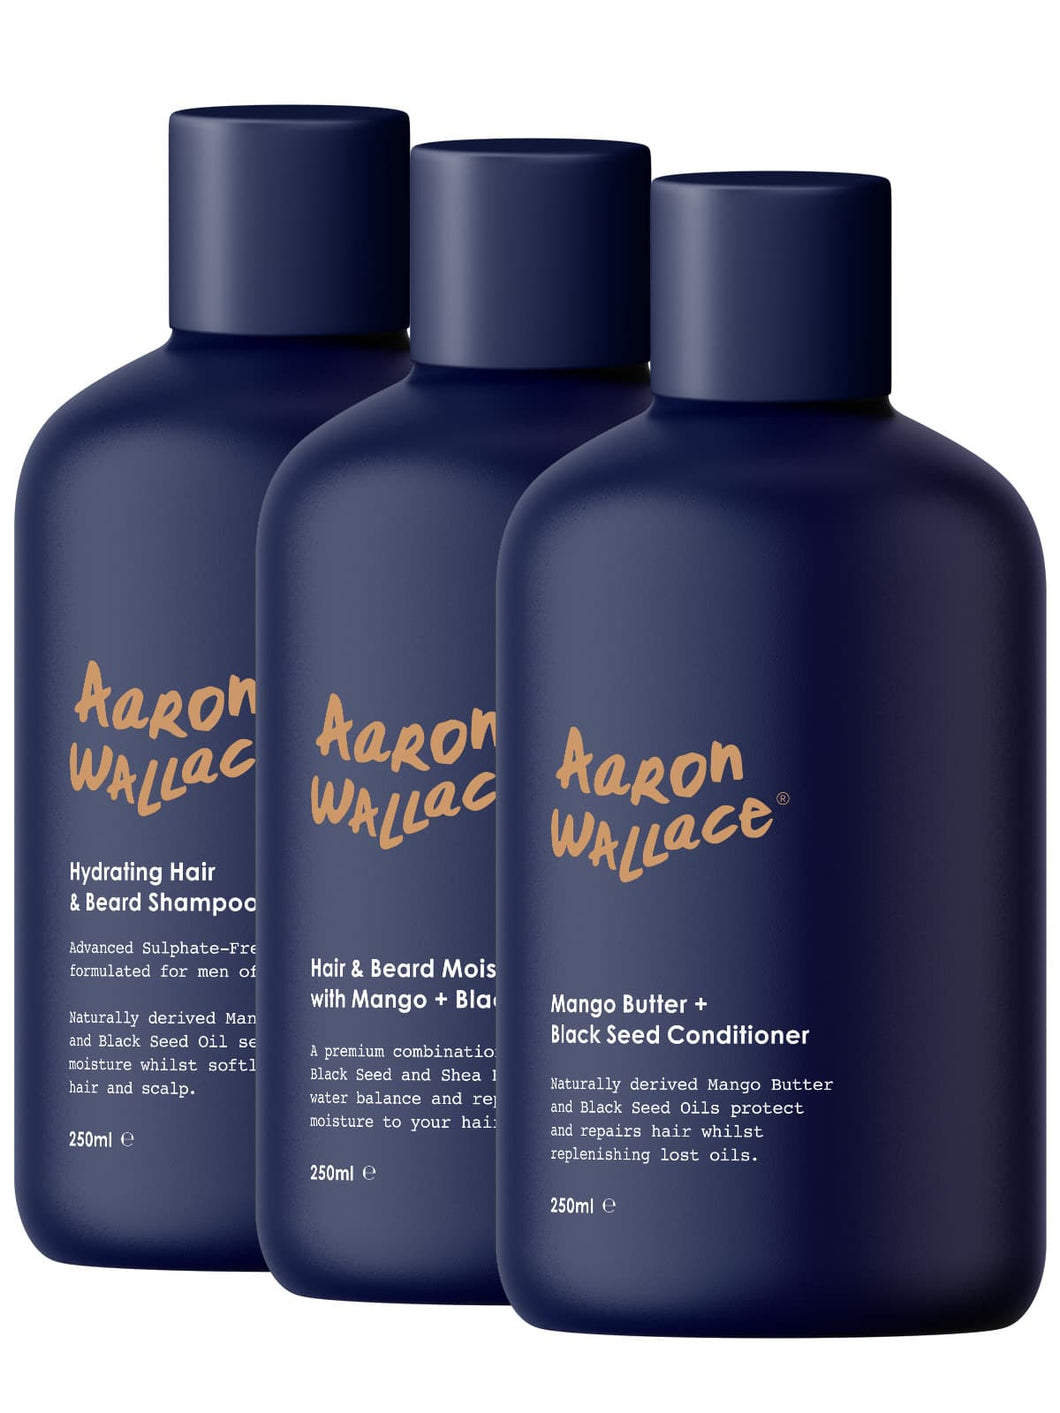 Aaron Wallace 3 step haircare system